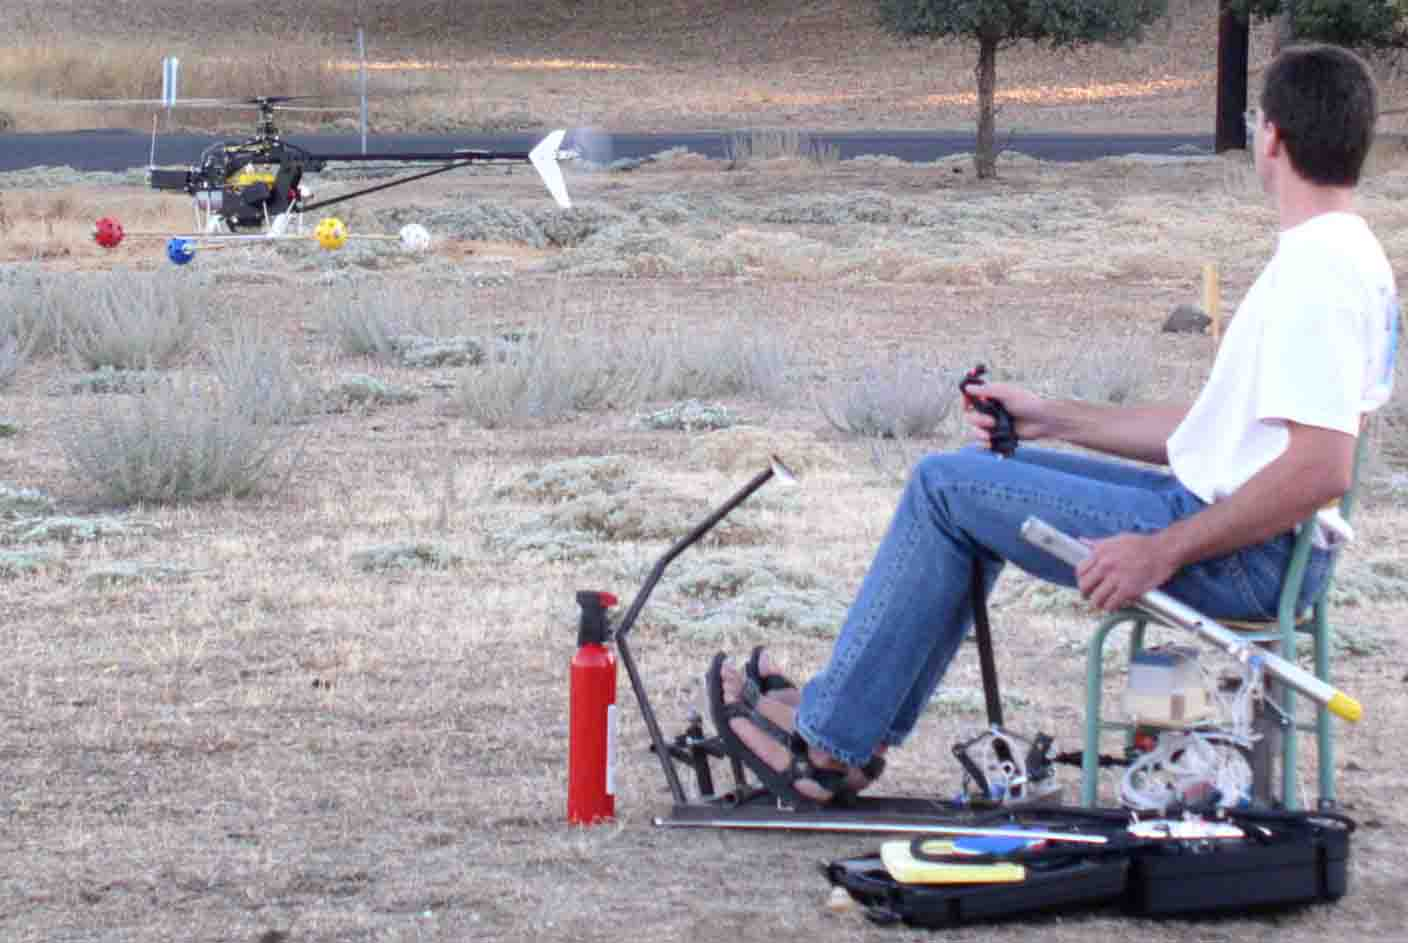 Where can learn to fly a helicopter